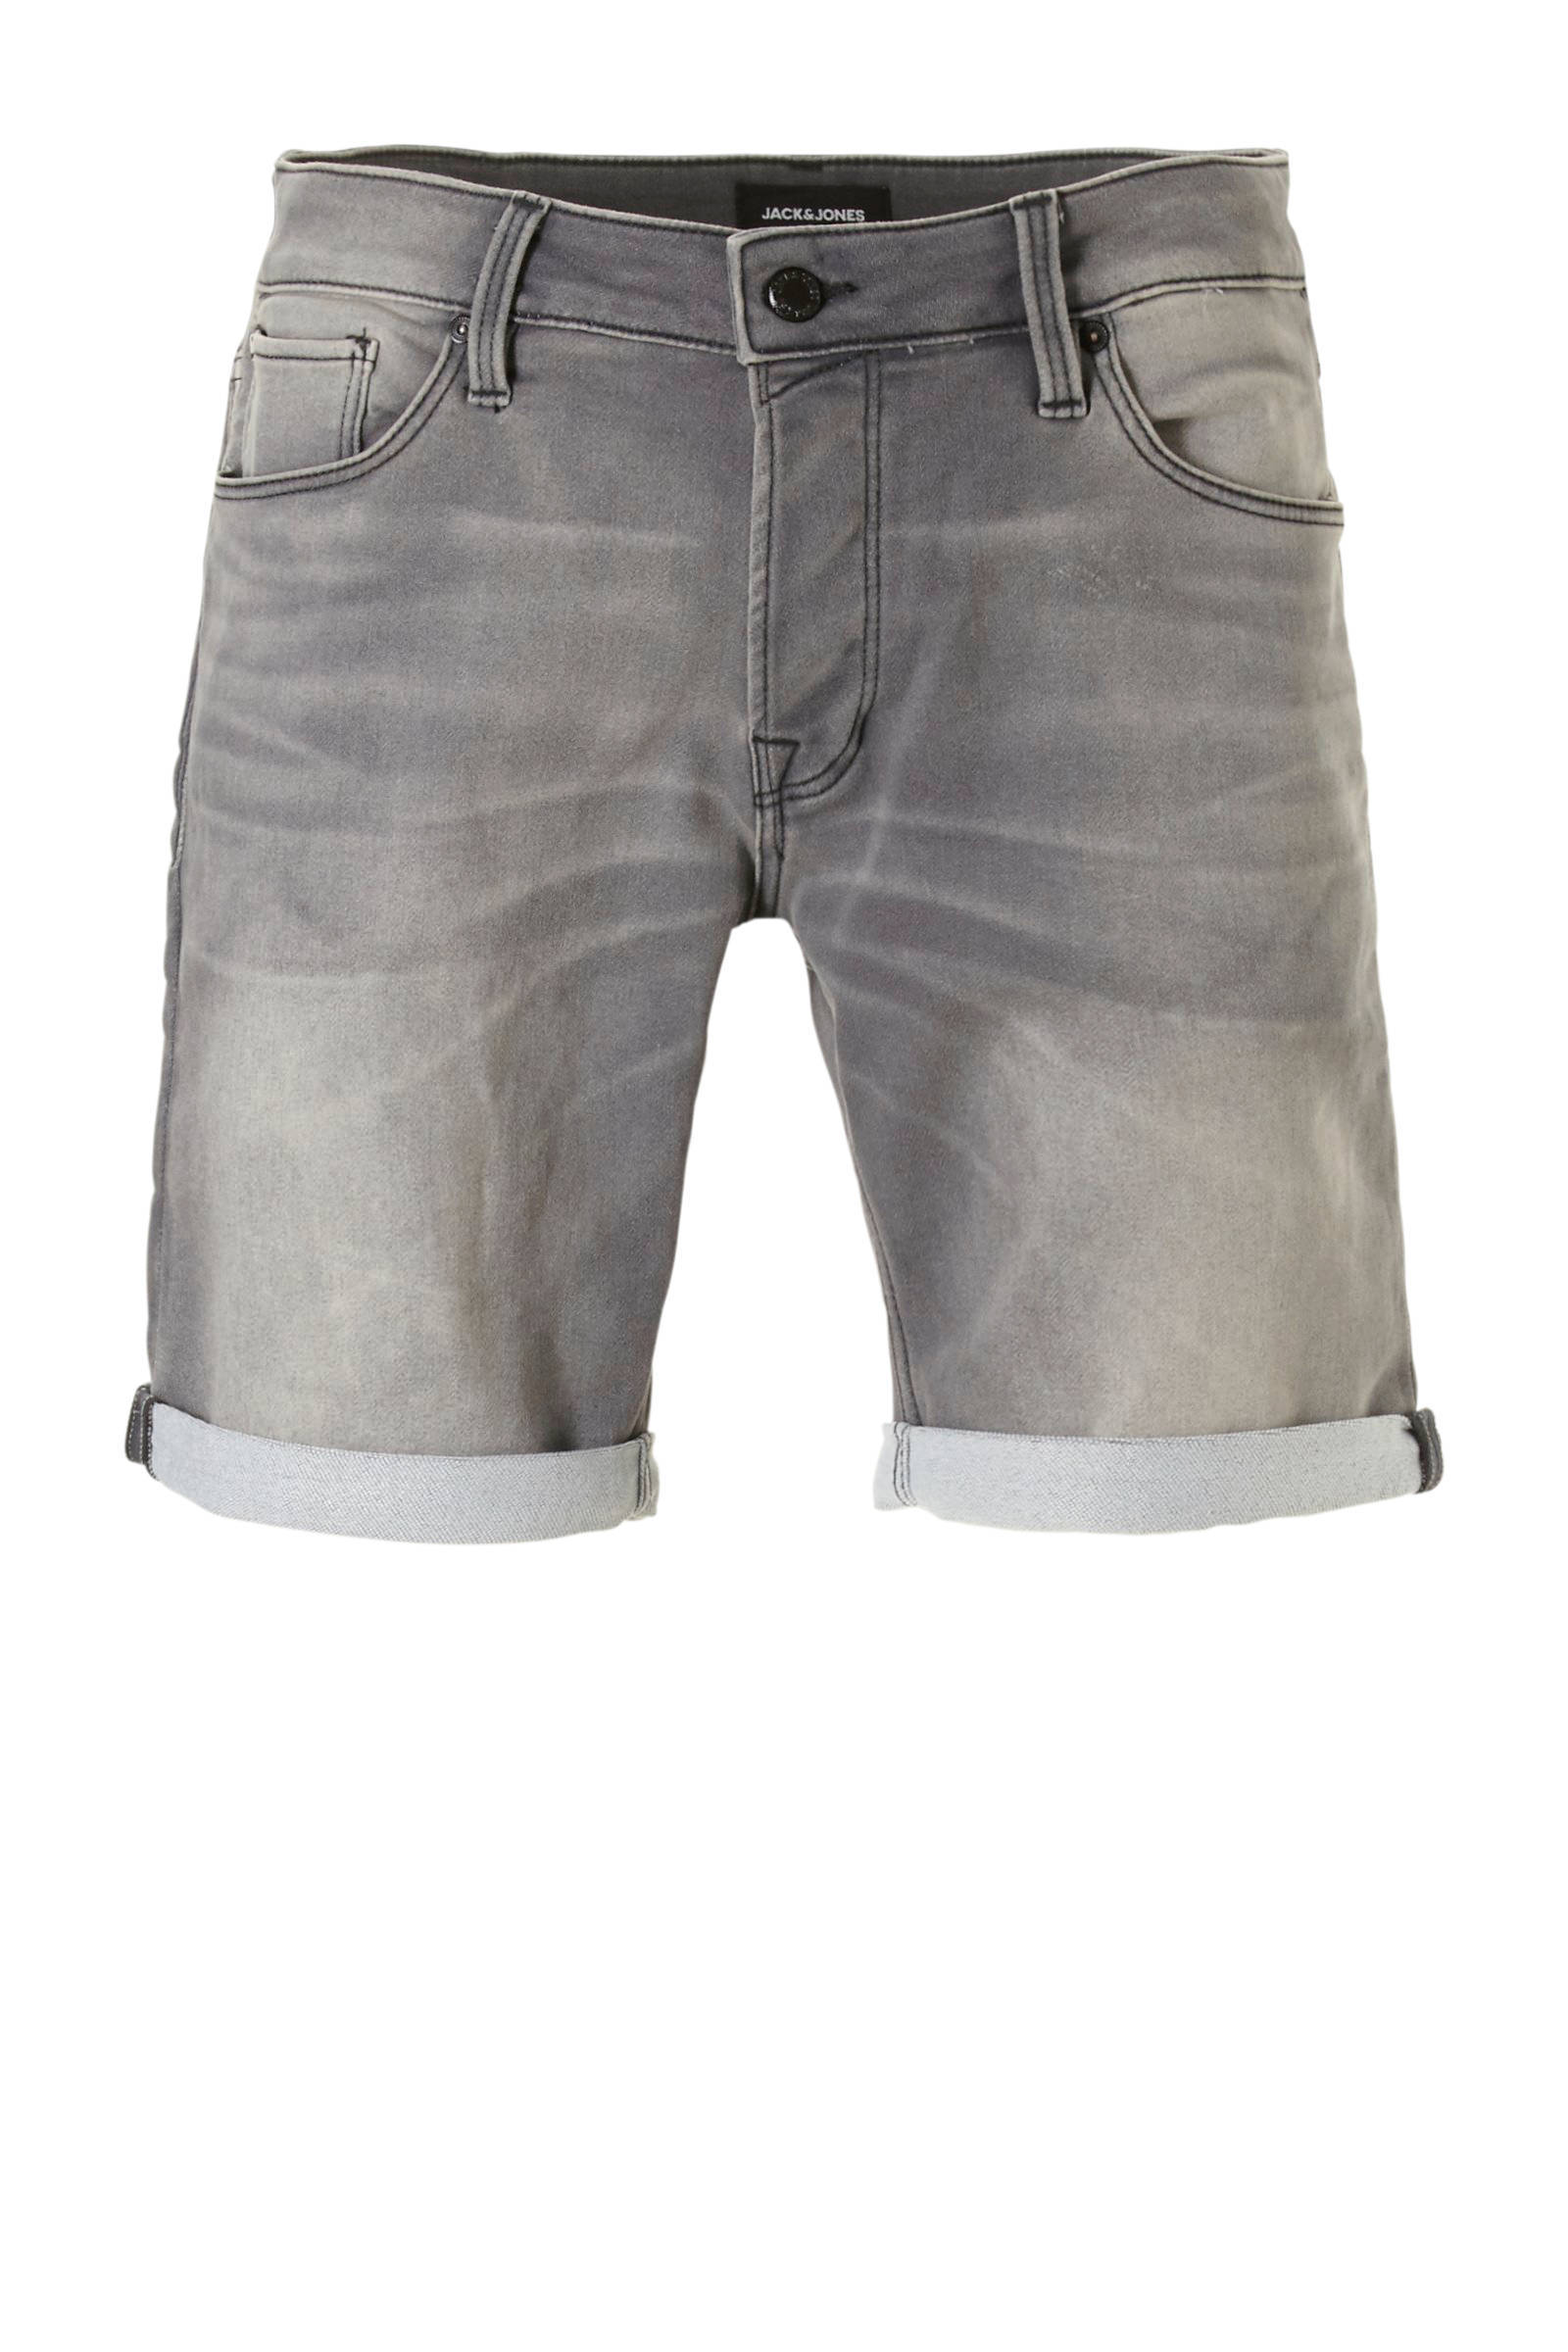 02dbf47165e jack-jones-intelligence-jeans-short-grijs-5713754382395.jpg